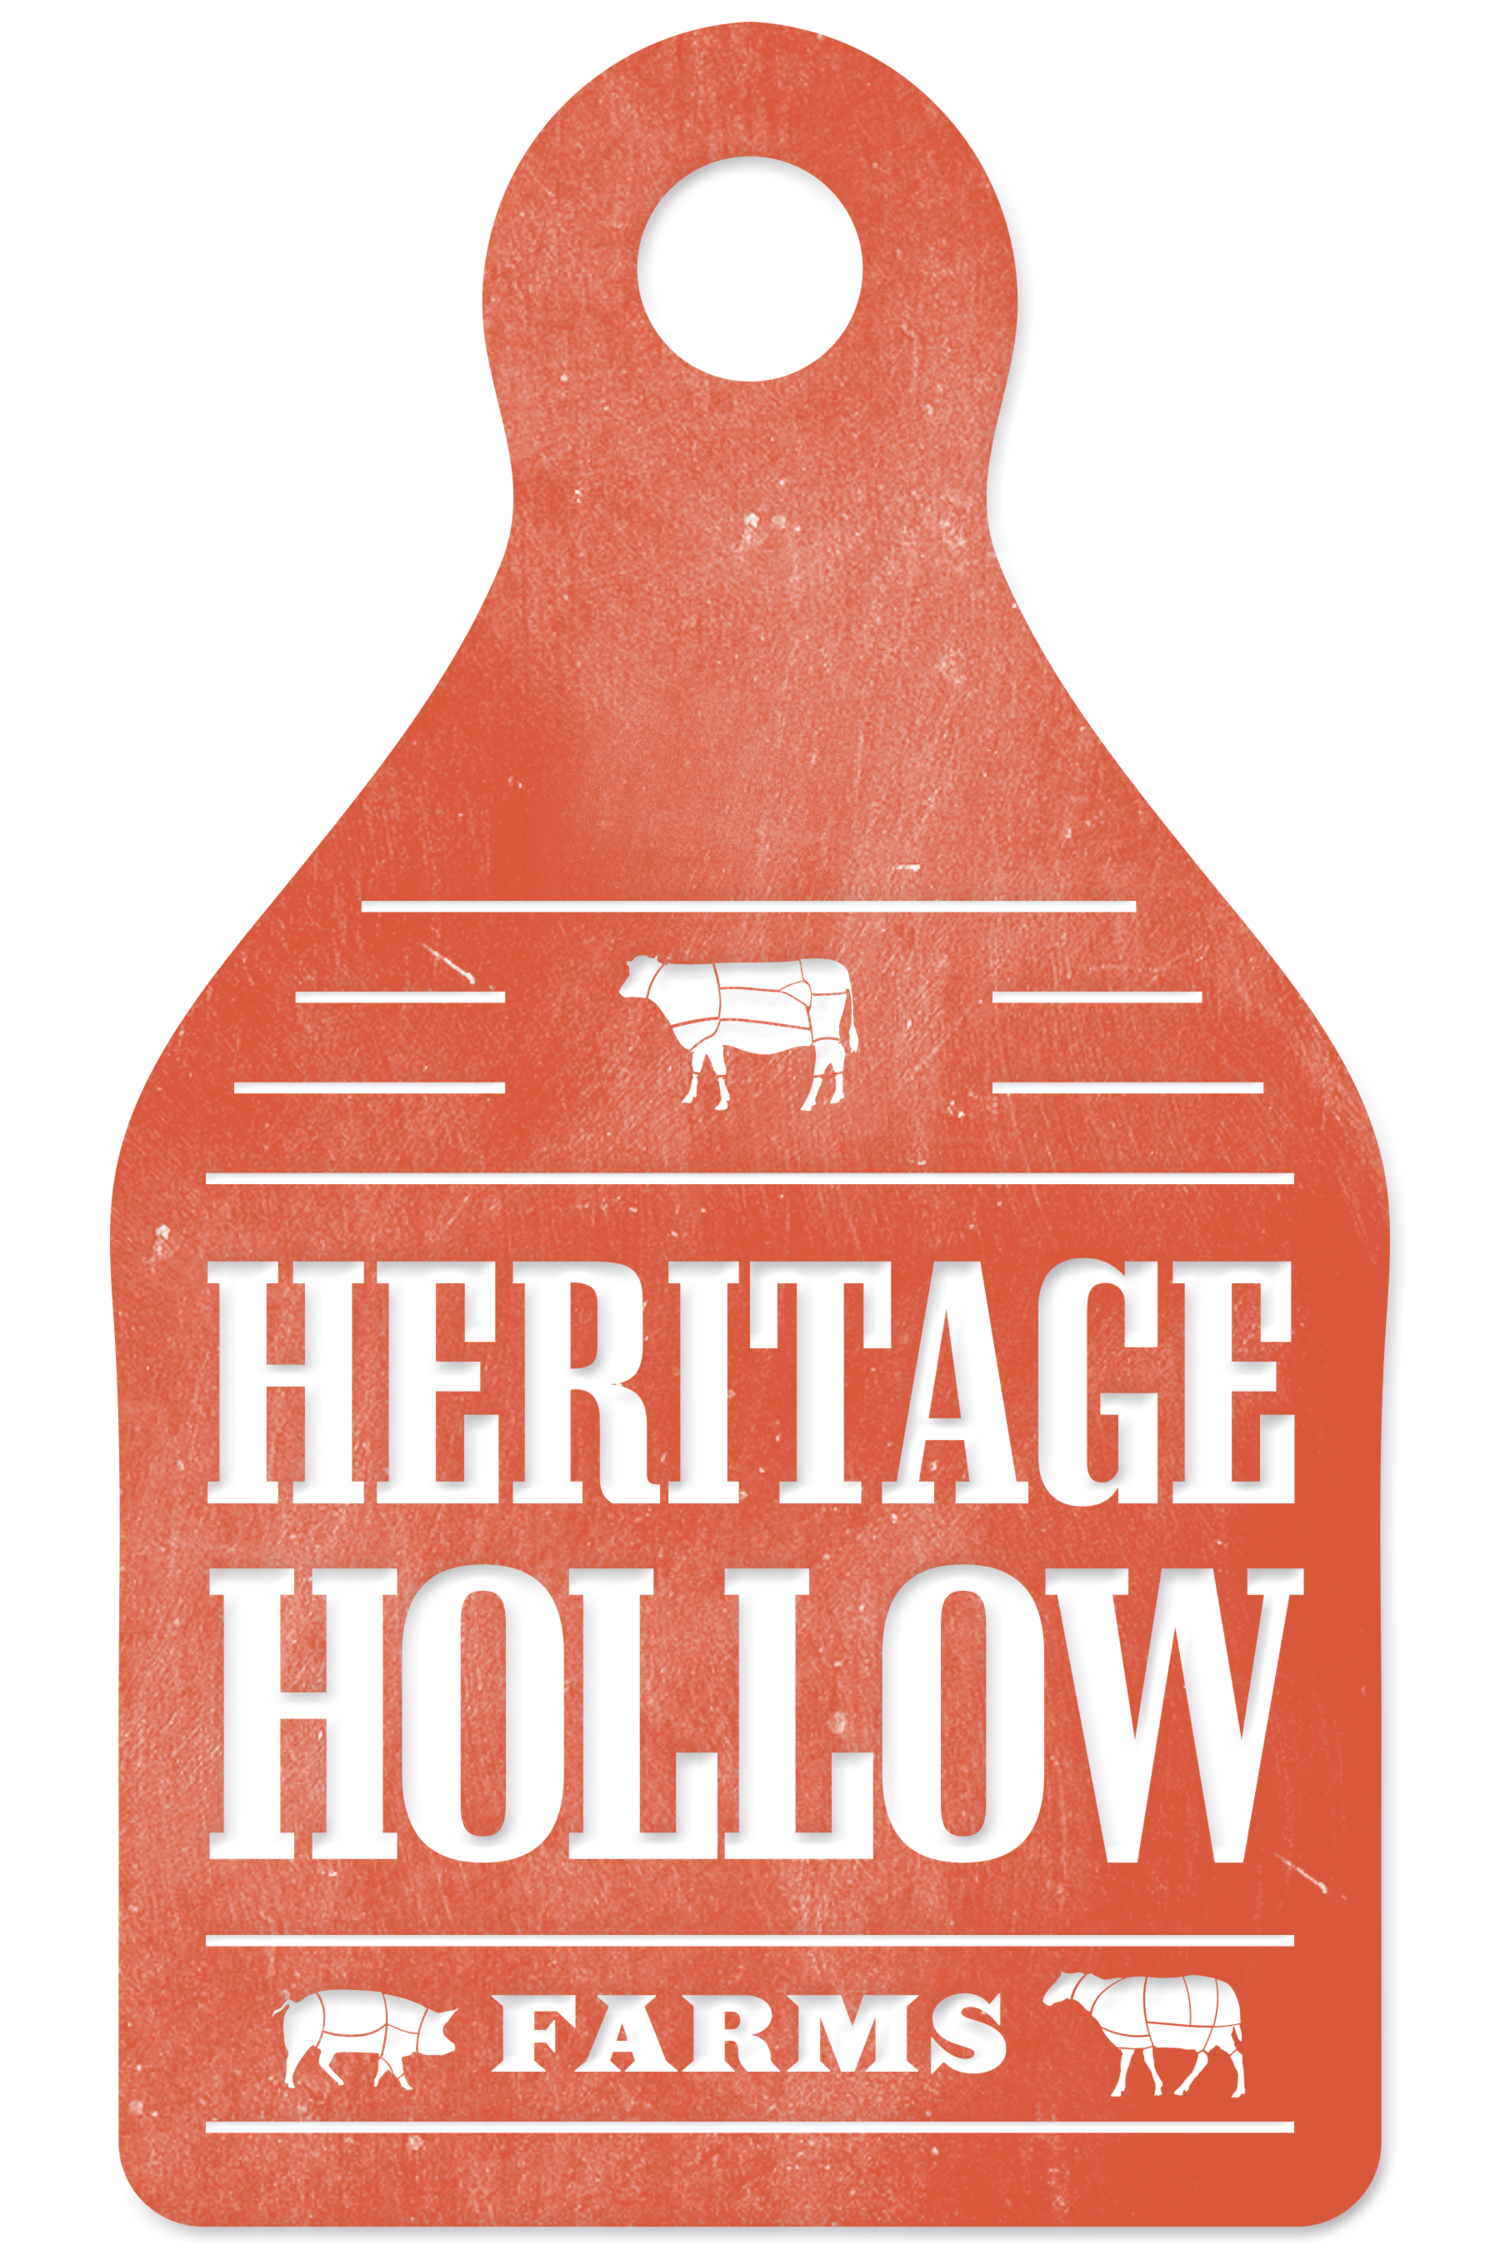 Heritage Hollow Farms | Sperryville, Virginia